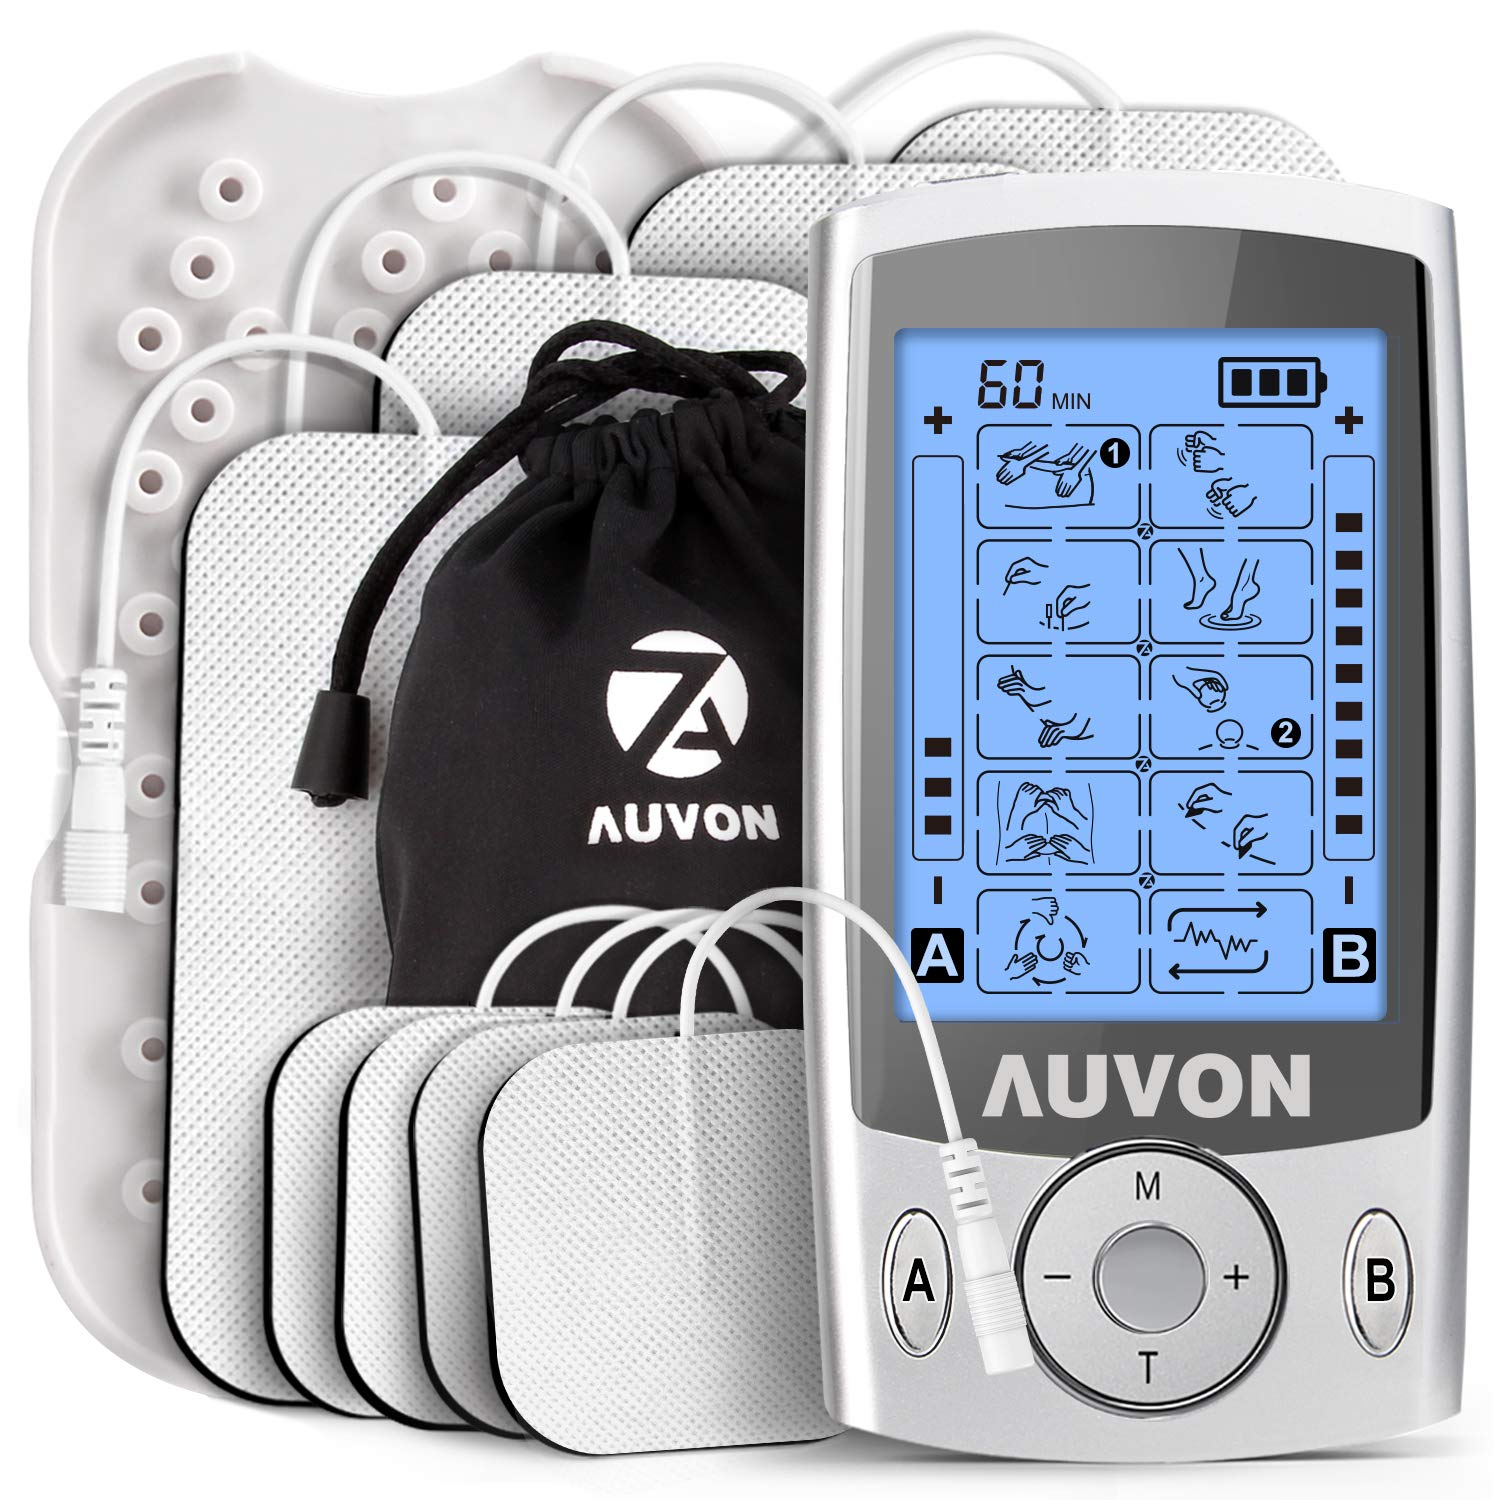 AUVON Dual Channel TENS Unit Muscle Stimulator Machine with 20 Modes, 2'' and 2''x4'' TENS Unit Electrode Pads by AUVON